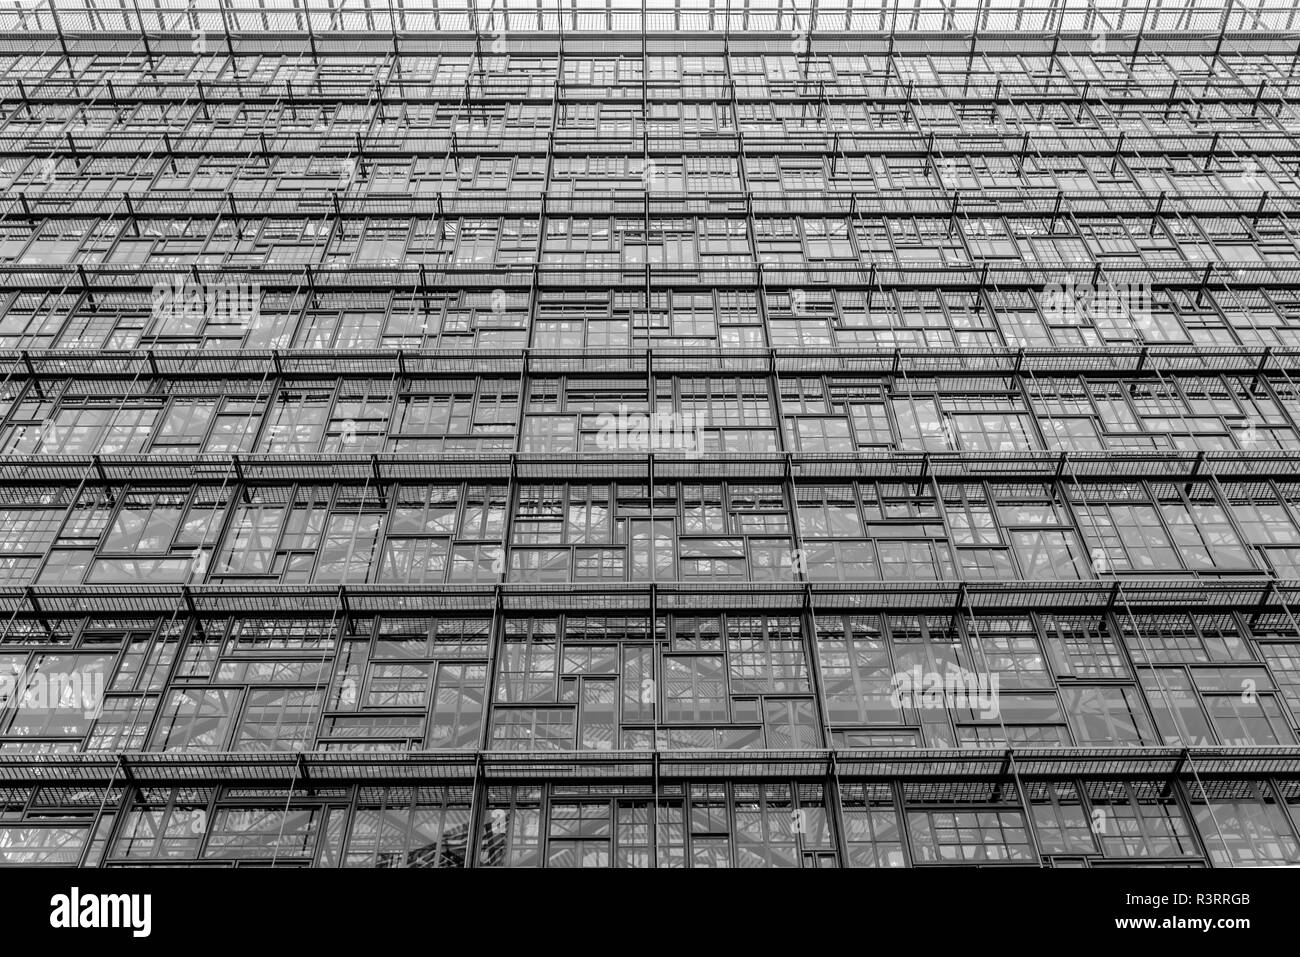 Abstract picture of the House of Europe, showing the recycled windows - Stock Image